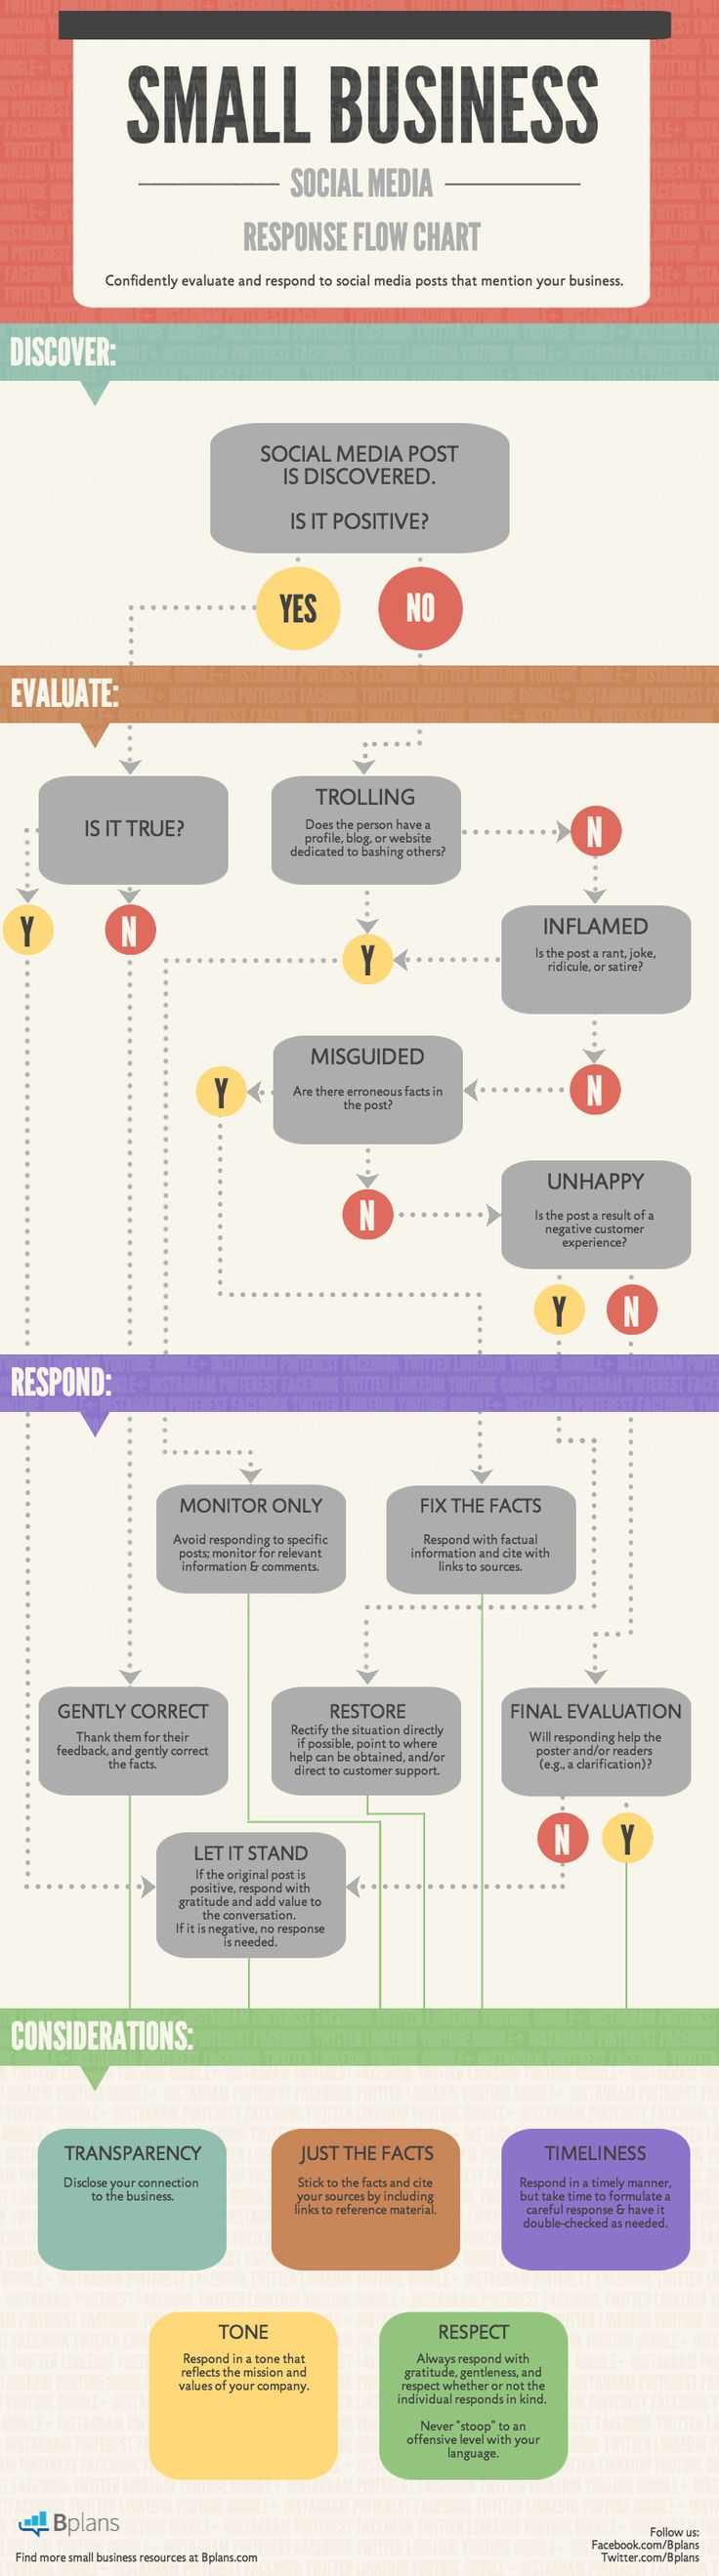 Why is a Social Media Response Flow Chart useful to small Business? Check out this #Infographic to find out! http://articles.bplans.com/social-media-response-flow-chart/ #socialmedia #smallbusiness